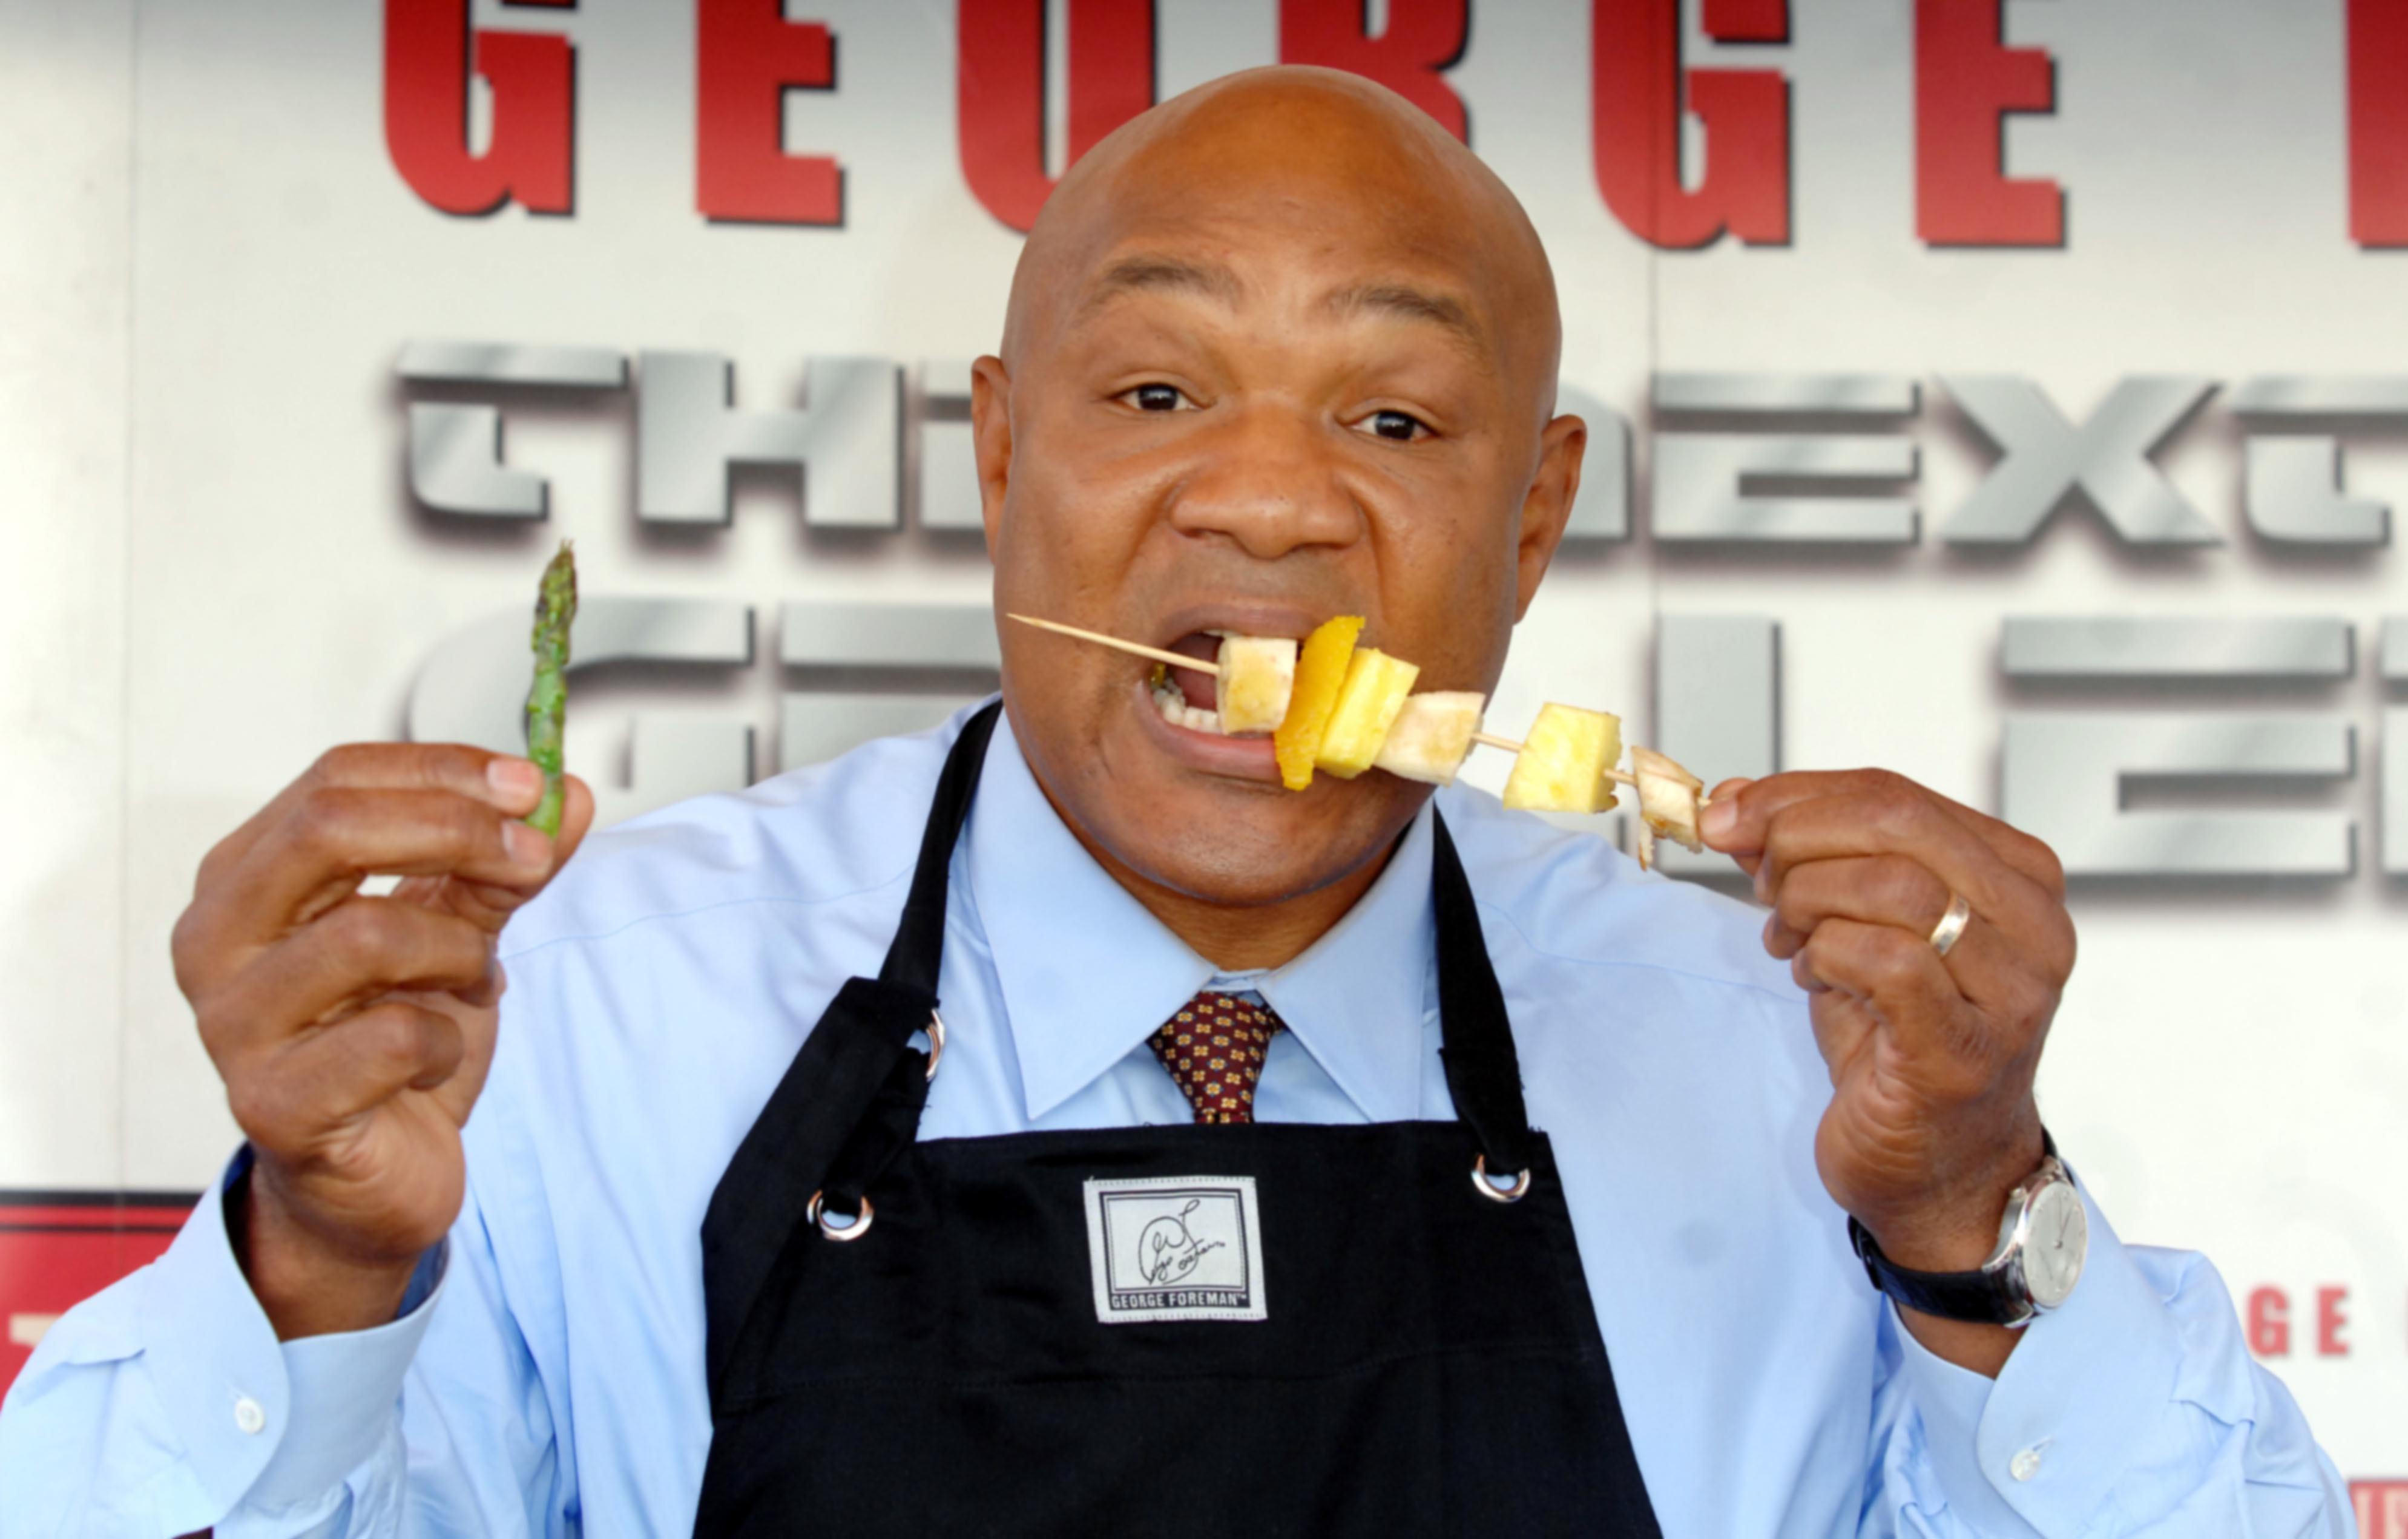 UK - The British Heart Foundation - George Foreman